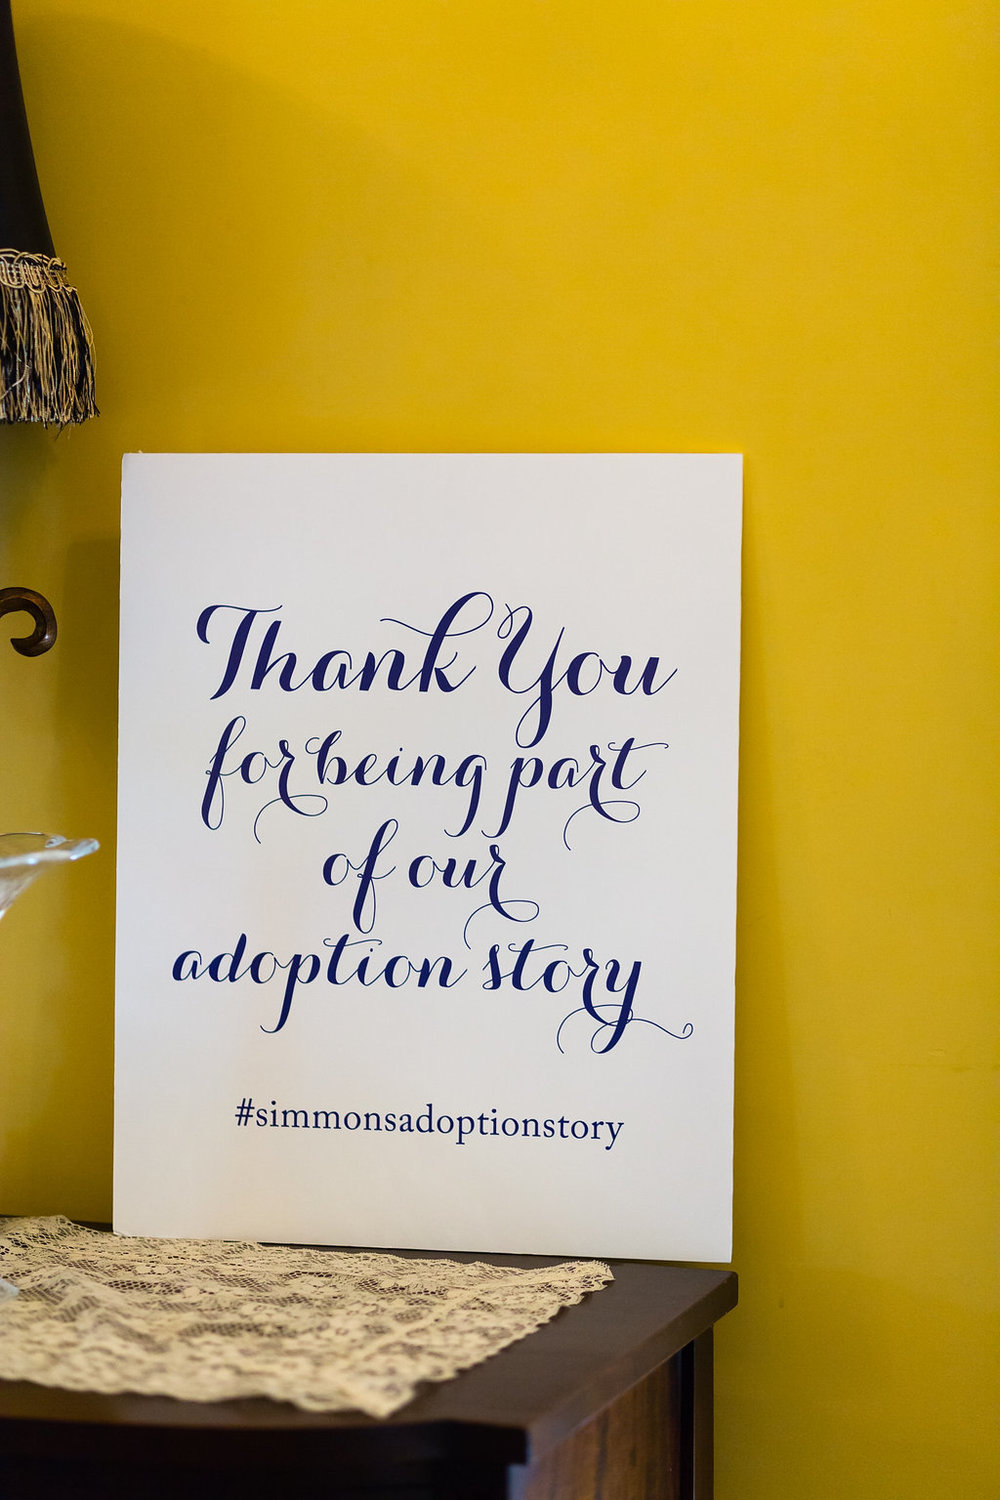 Adoption Fundraiser at GranDale Manor, Locklane Weddings & Events, Caley Newberry Photography